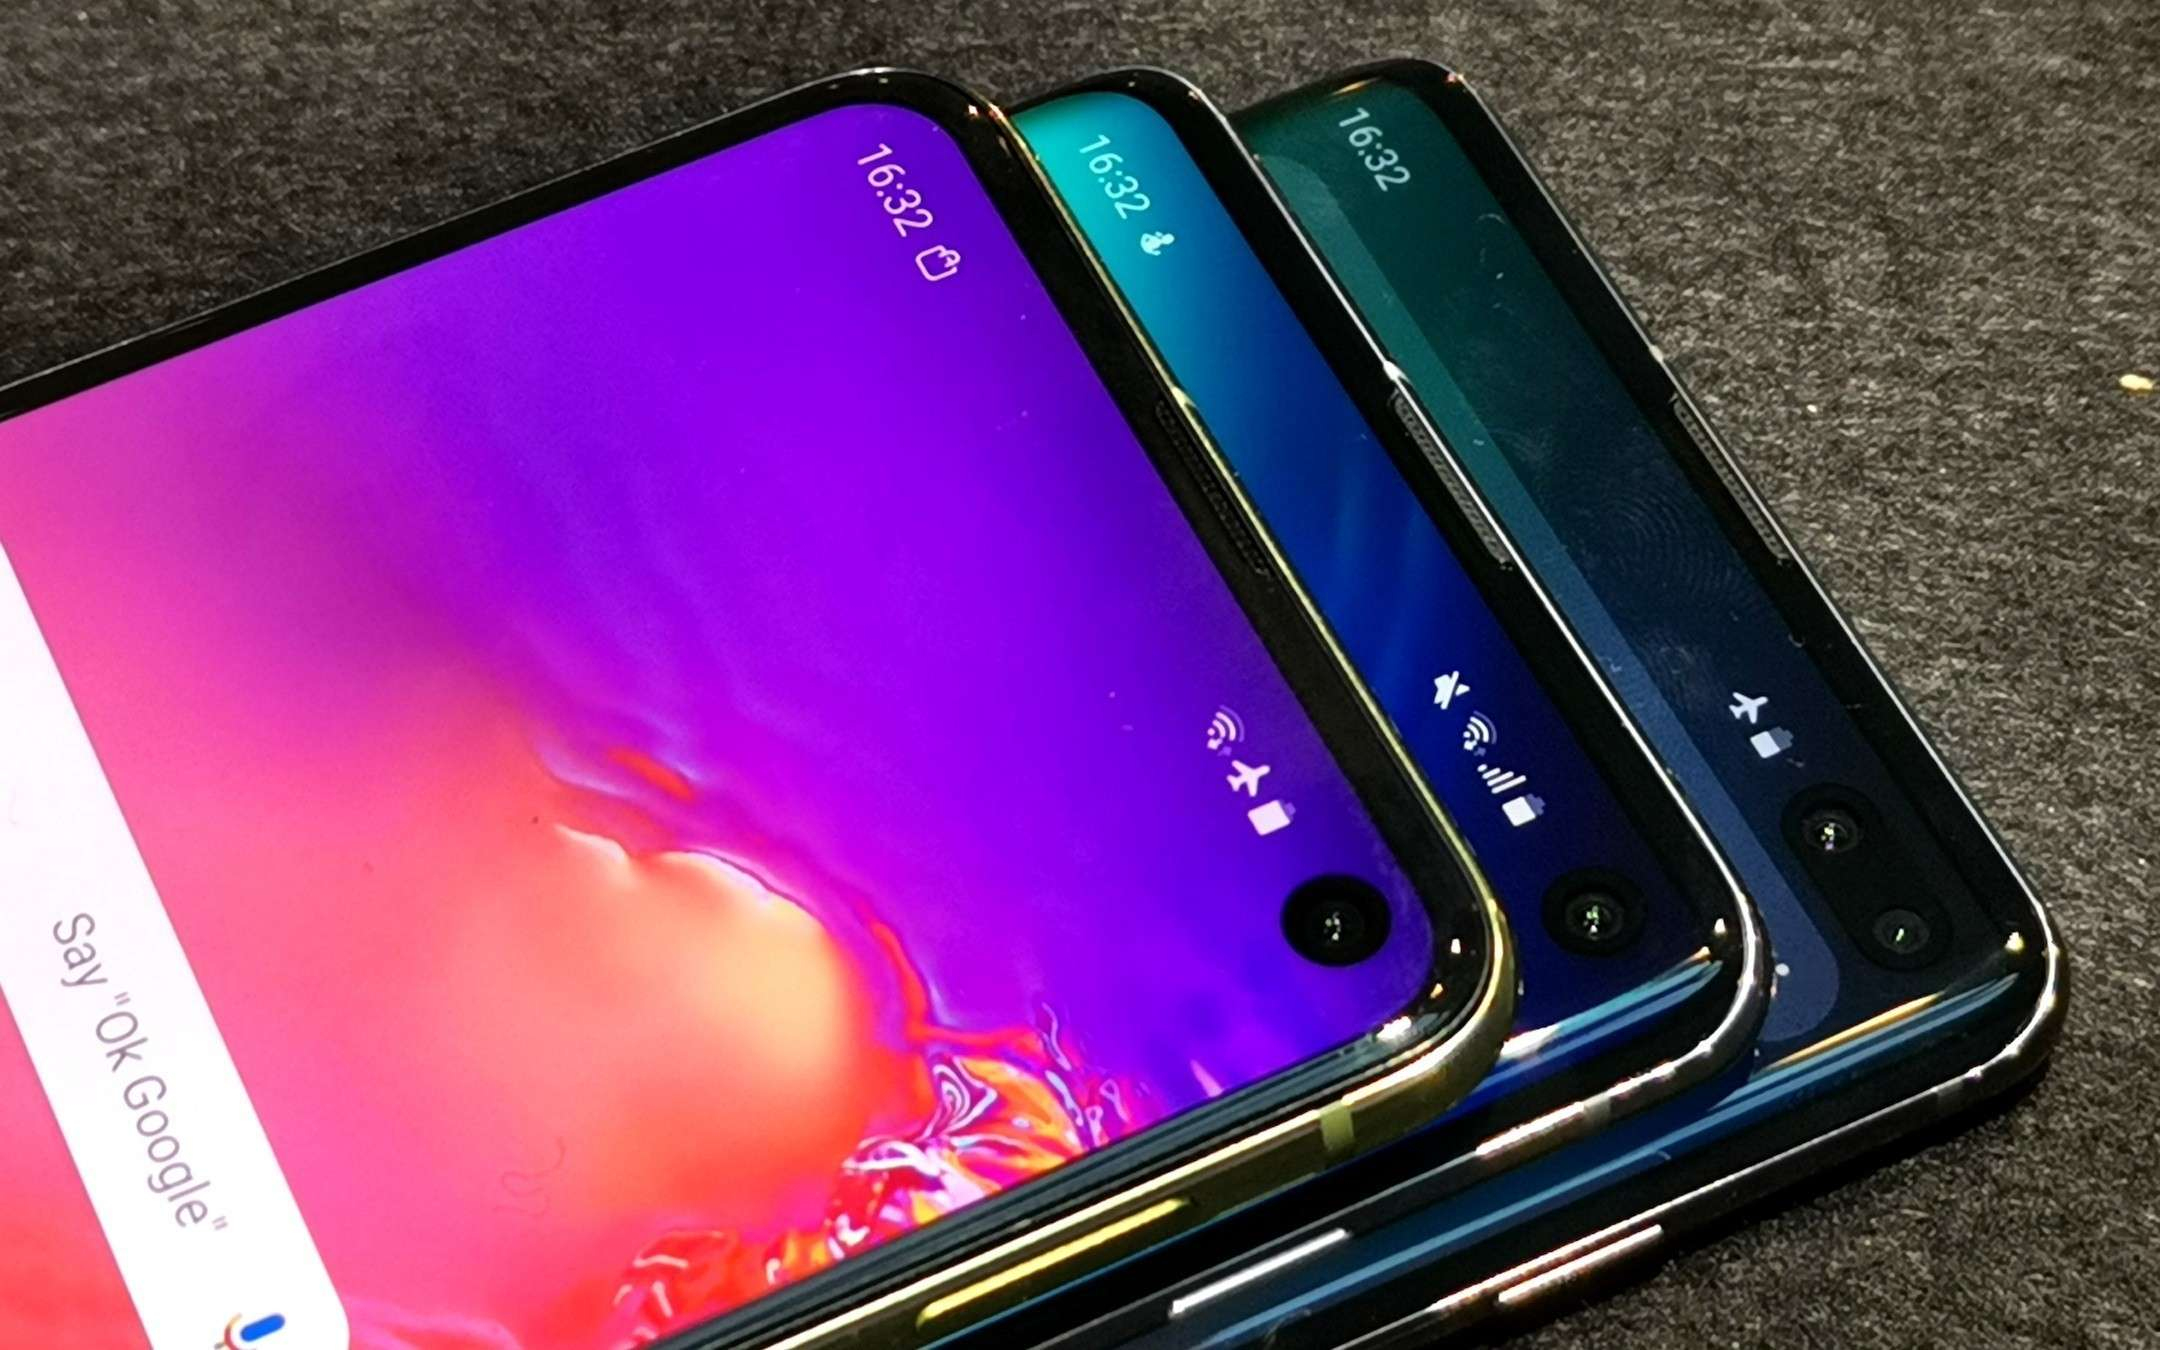 Come comprare a rate Galaxy S10, S10+ ed S10e